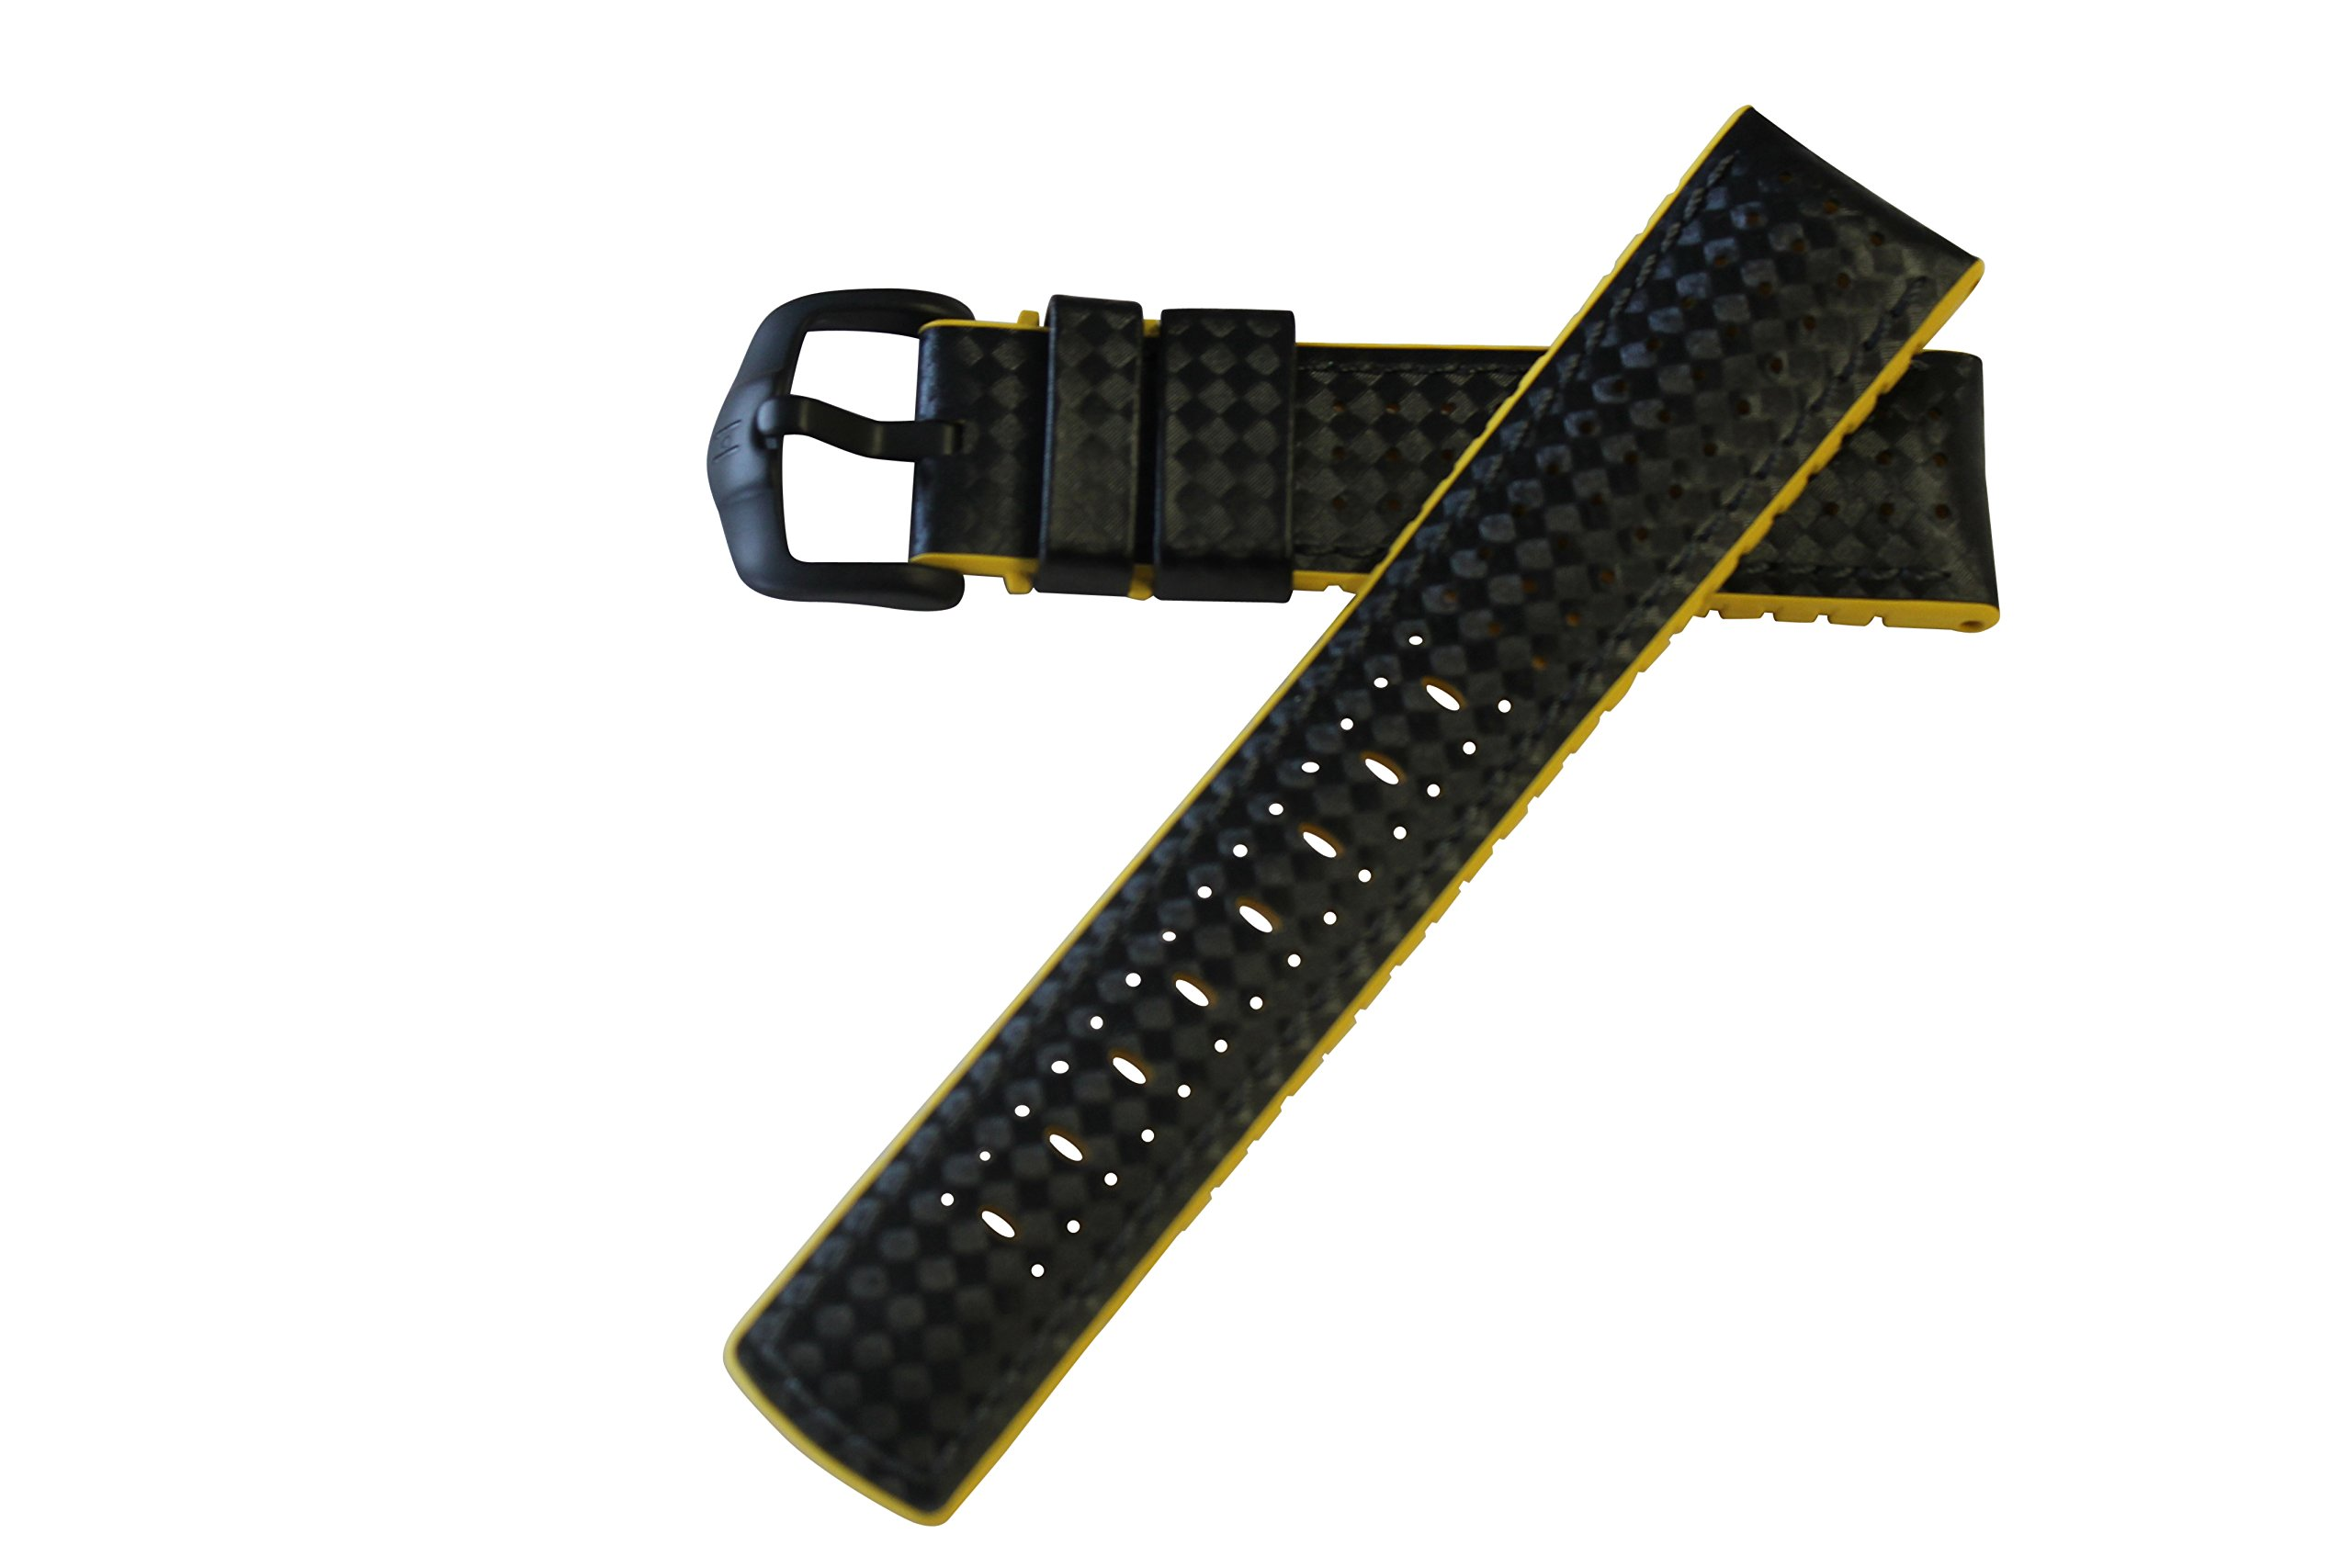 Hirsch Performance ARYTON Carbon Fiber Leather Sport Watch Strap Rubber Lining Black w/Yellow Lining 20mm